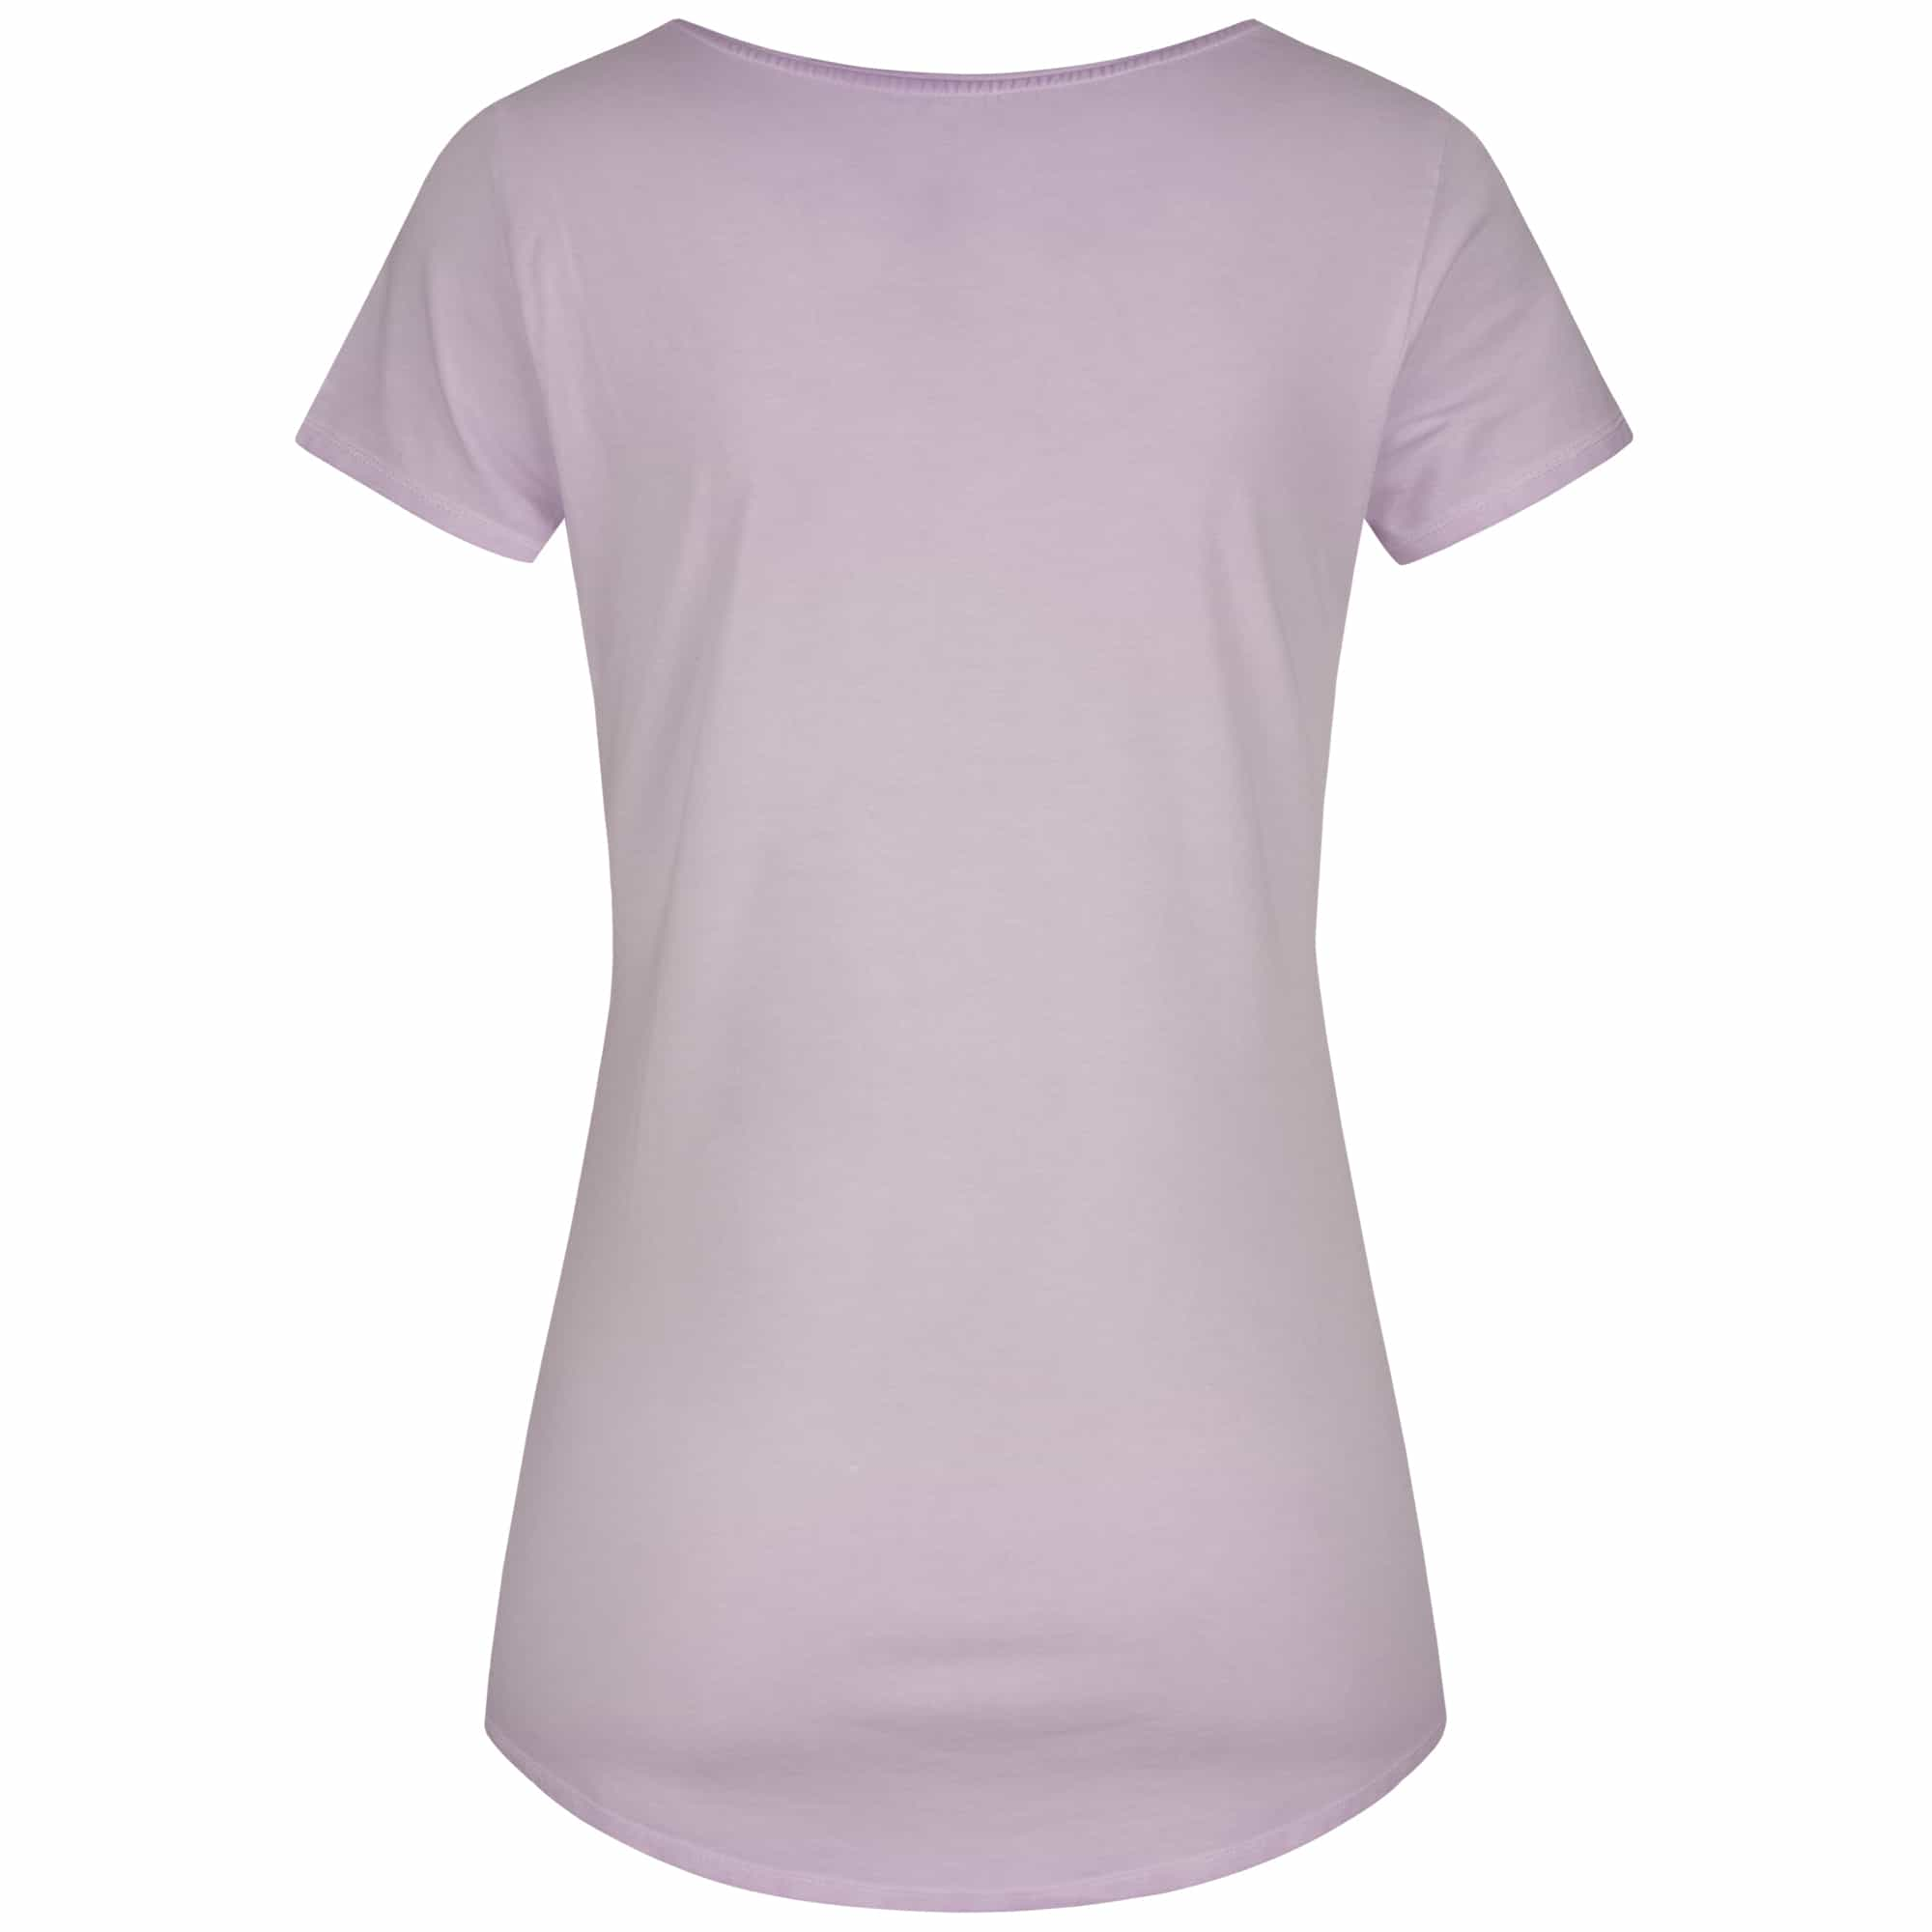 "Yoga shirt ""Waris"", pale violet - soft basic t-shirt with motto print"